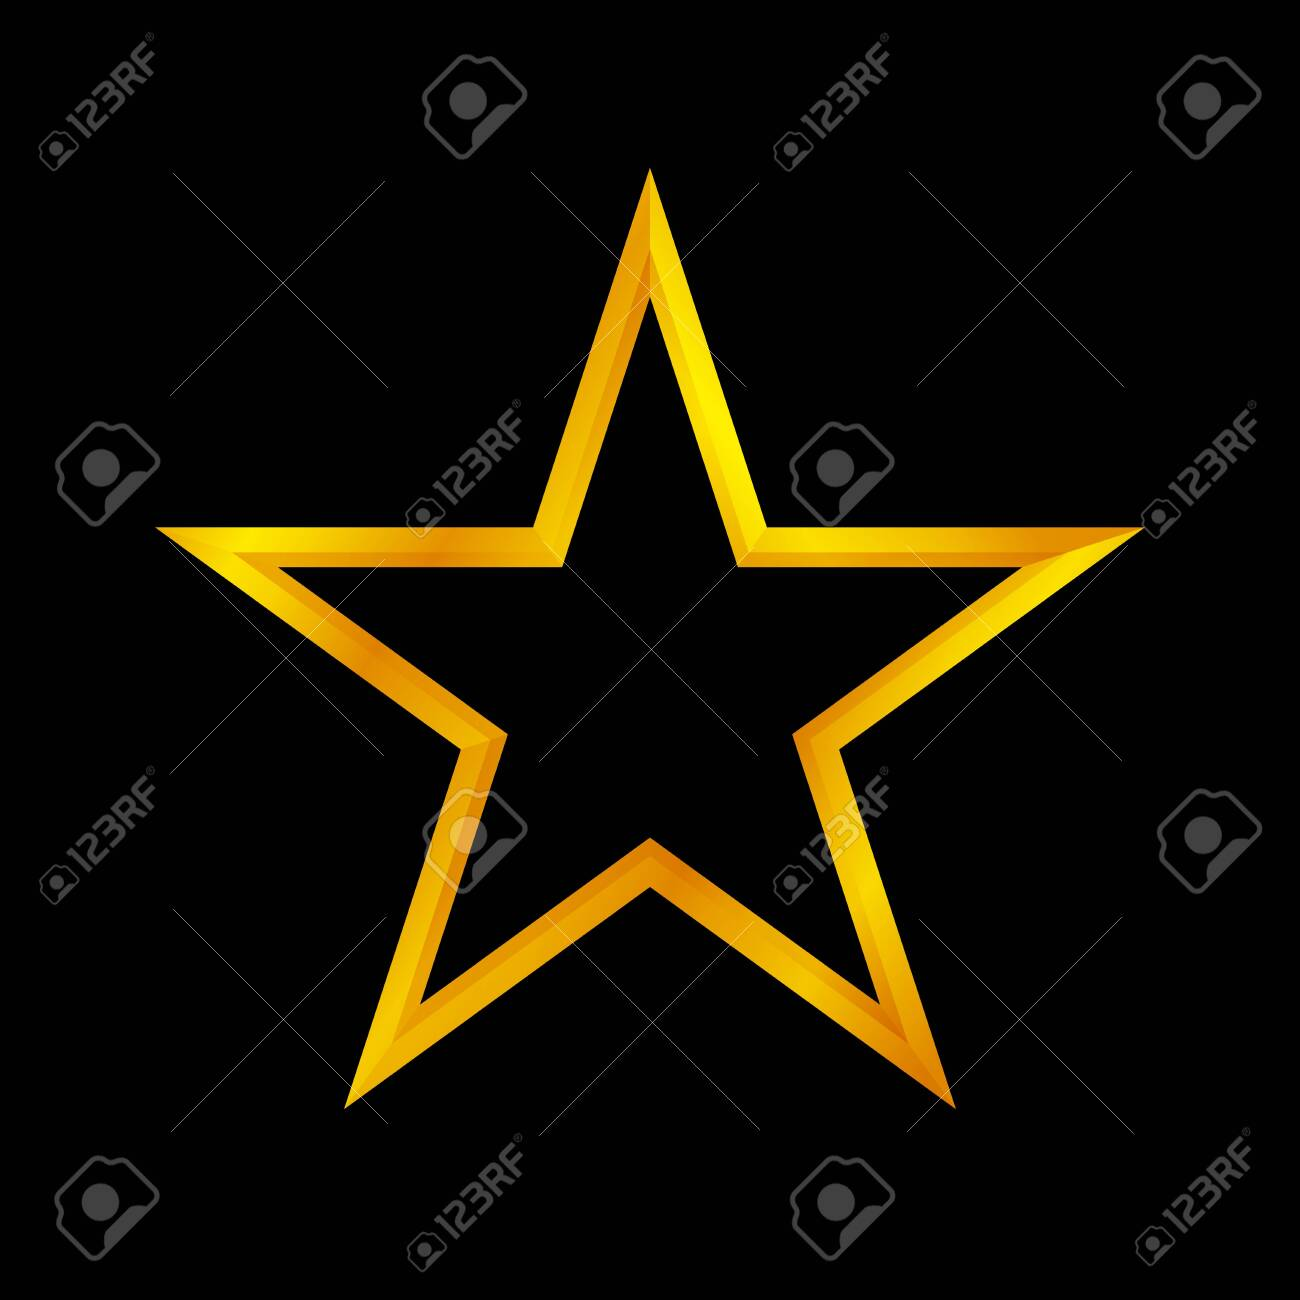 Free Picture Of Star Shape, Download Free Clip Art, Free Clip Art on Clipart  Library